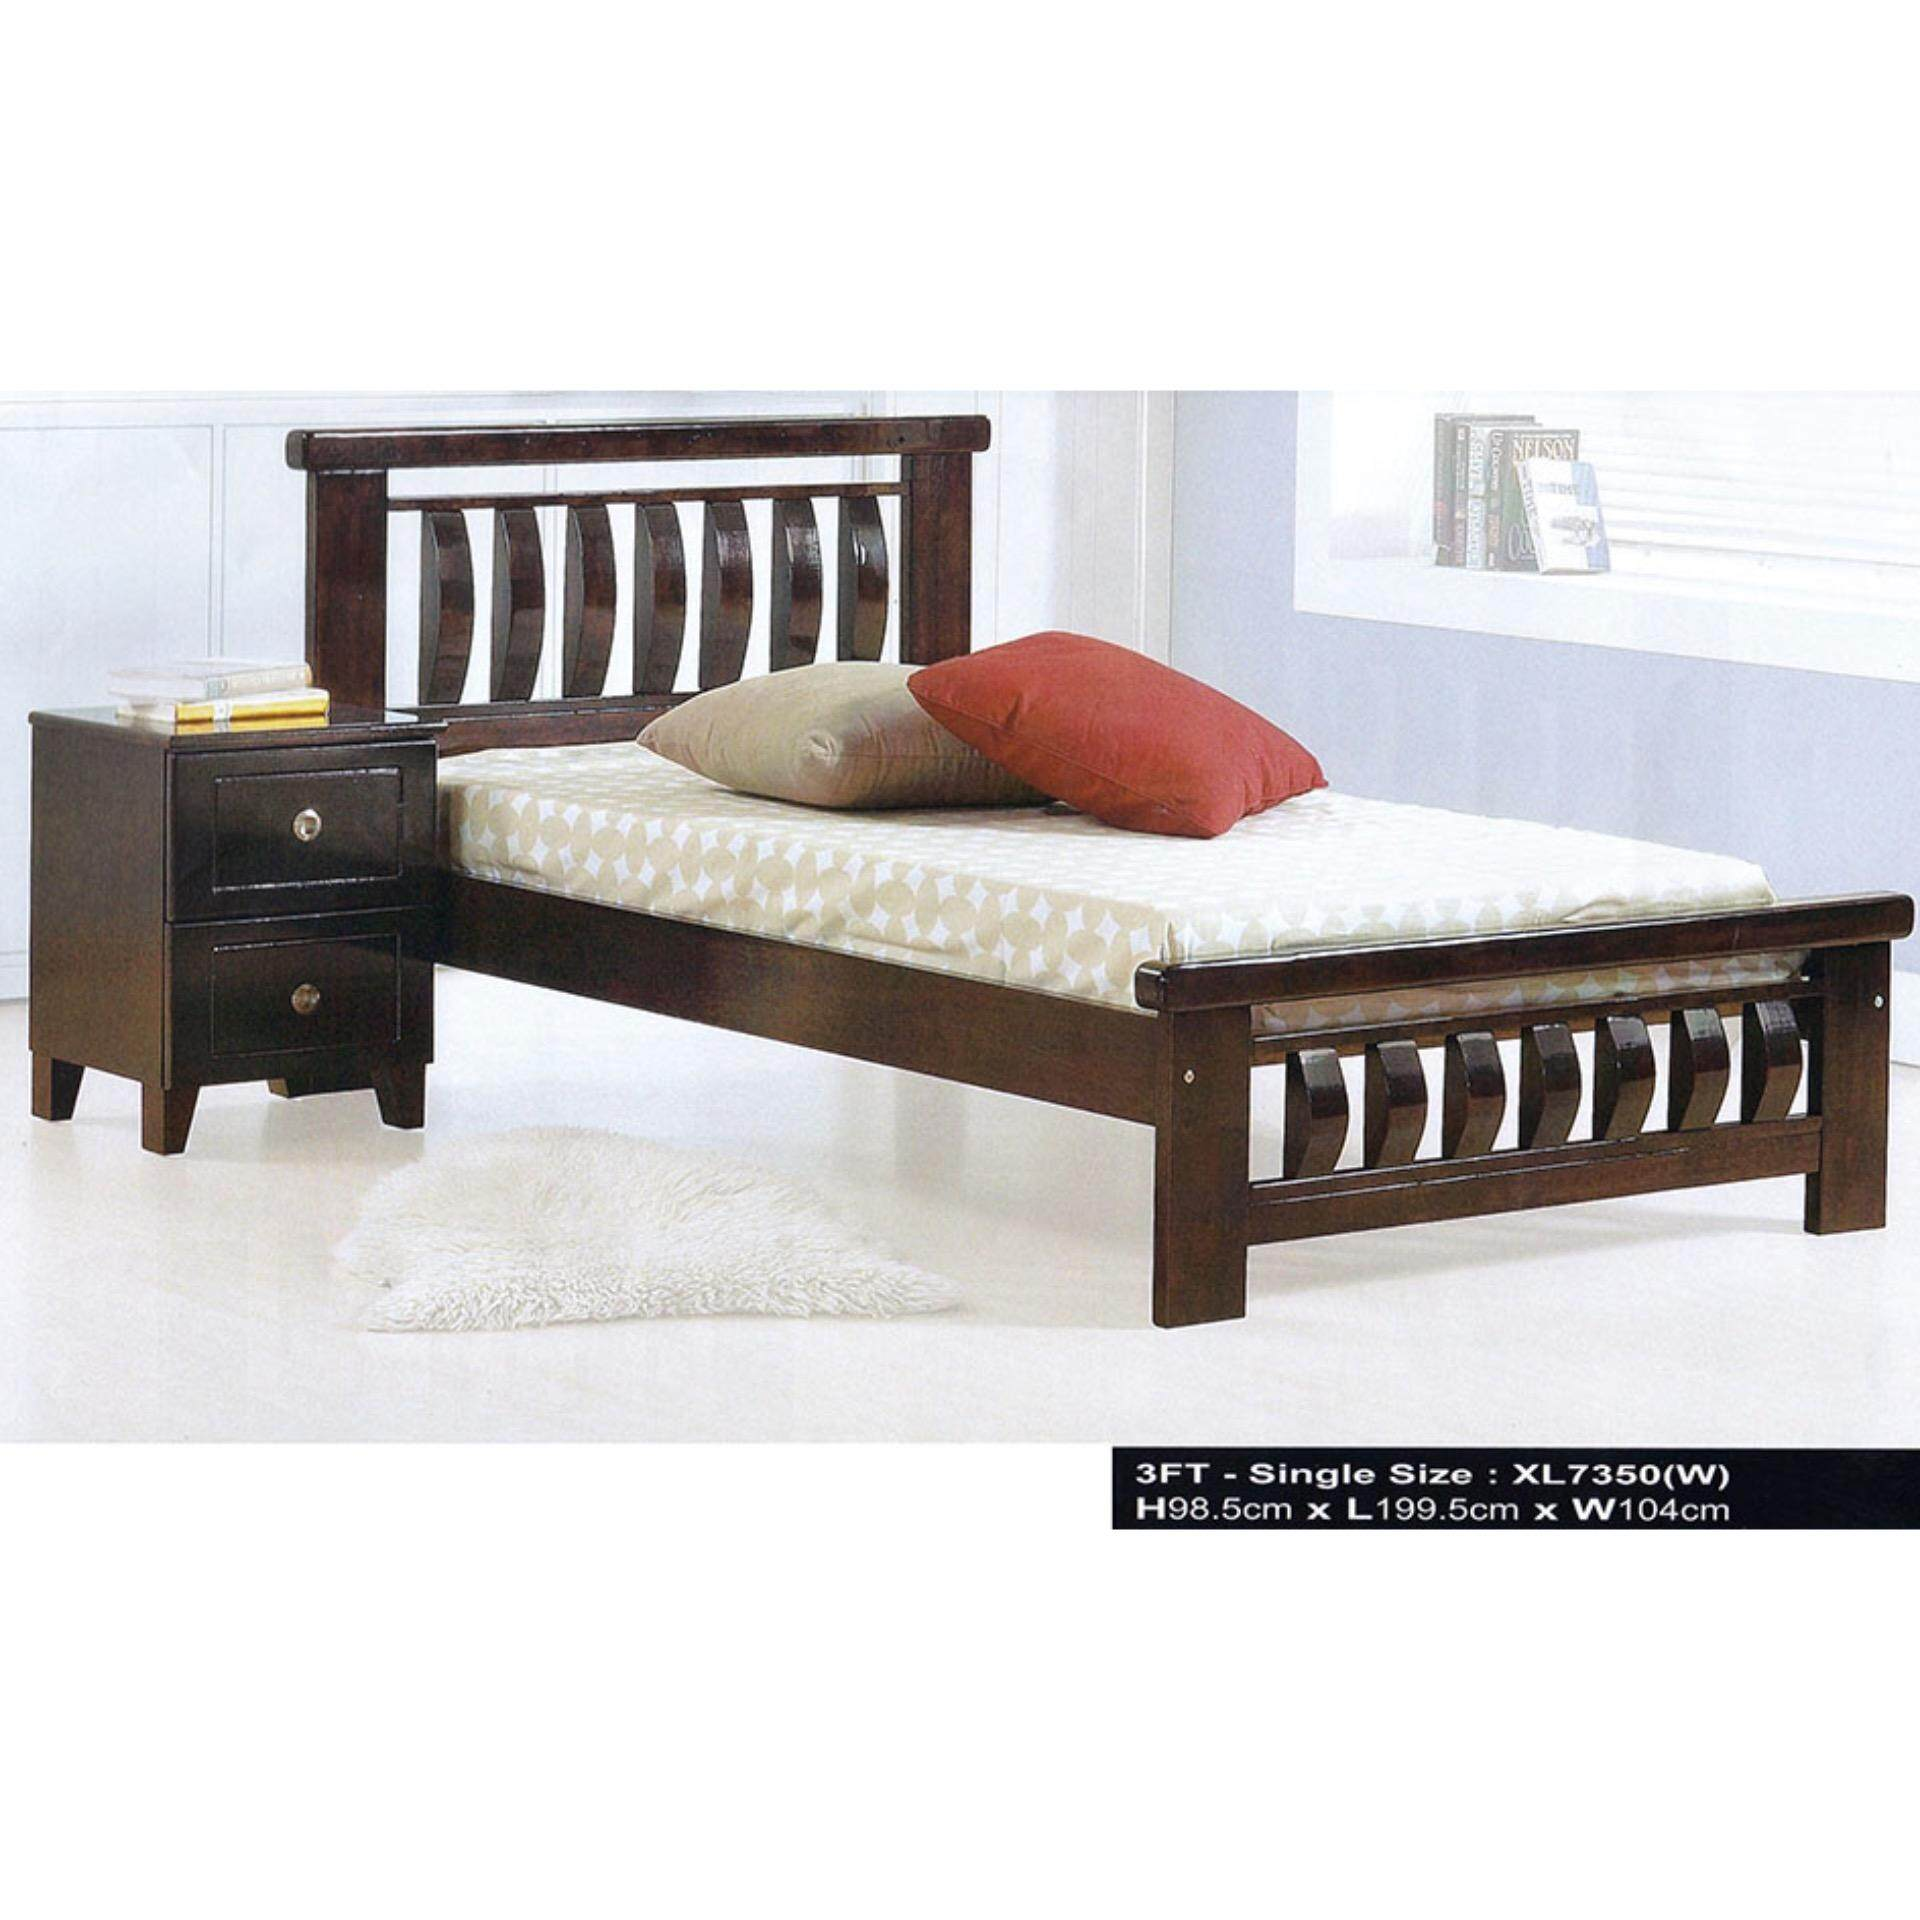 Solid Wood Strong Single Wooden Bed XL3332 (Oak) L1975MM X W1020MM X H1000MM